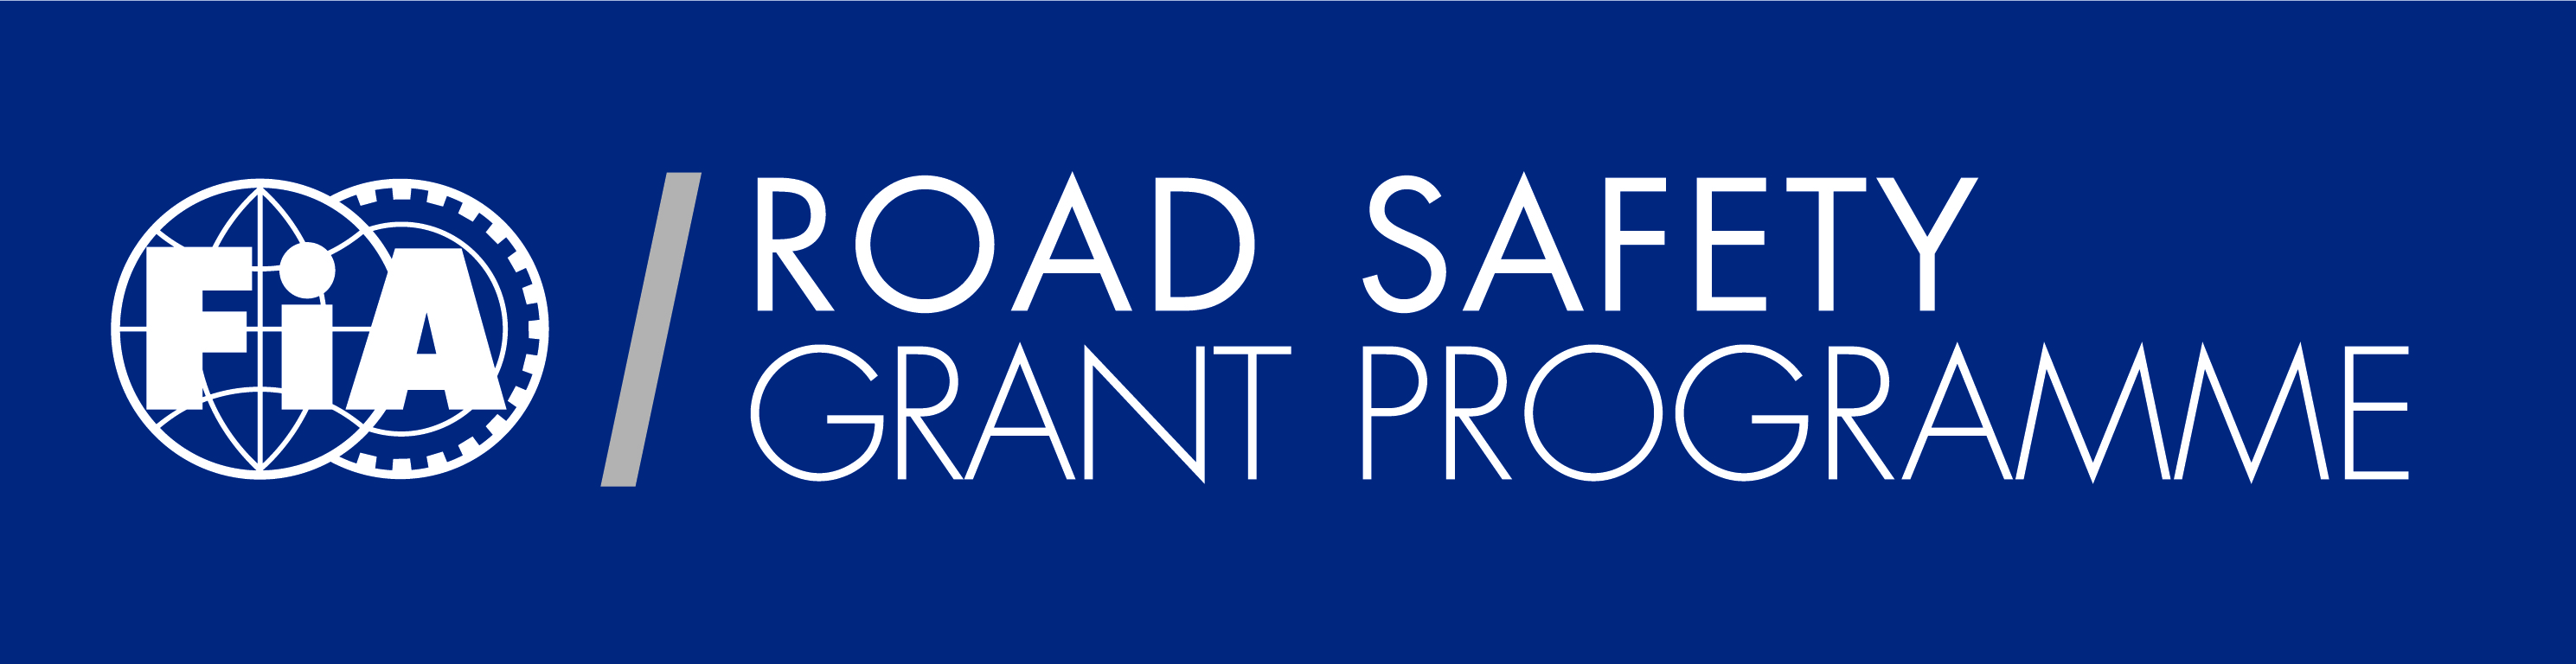 FIA Road Safety Grant Programme